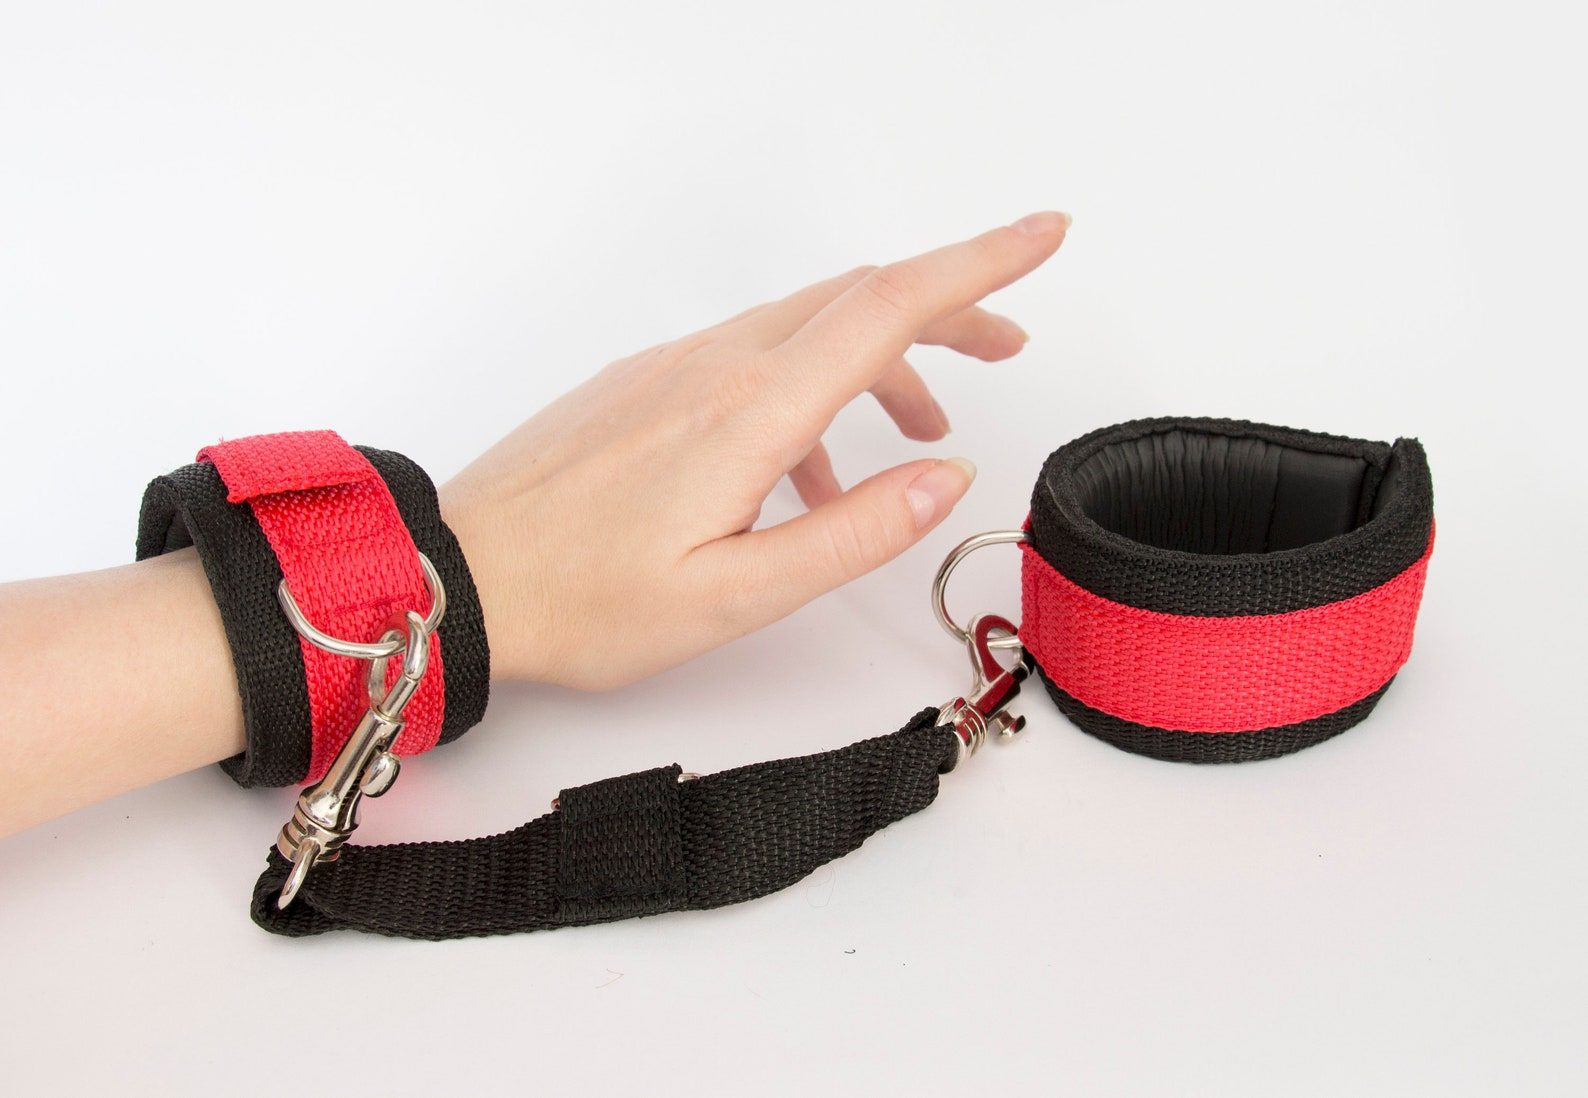 Bondage Restraints Sex Swings Kit Easy Access Velcro Adjustable Soft Wrist And Ankle Cuffs